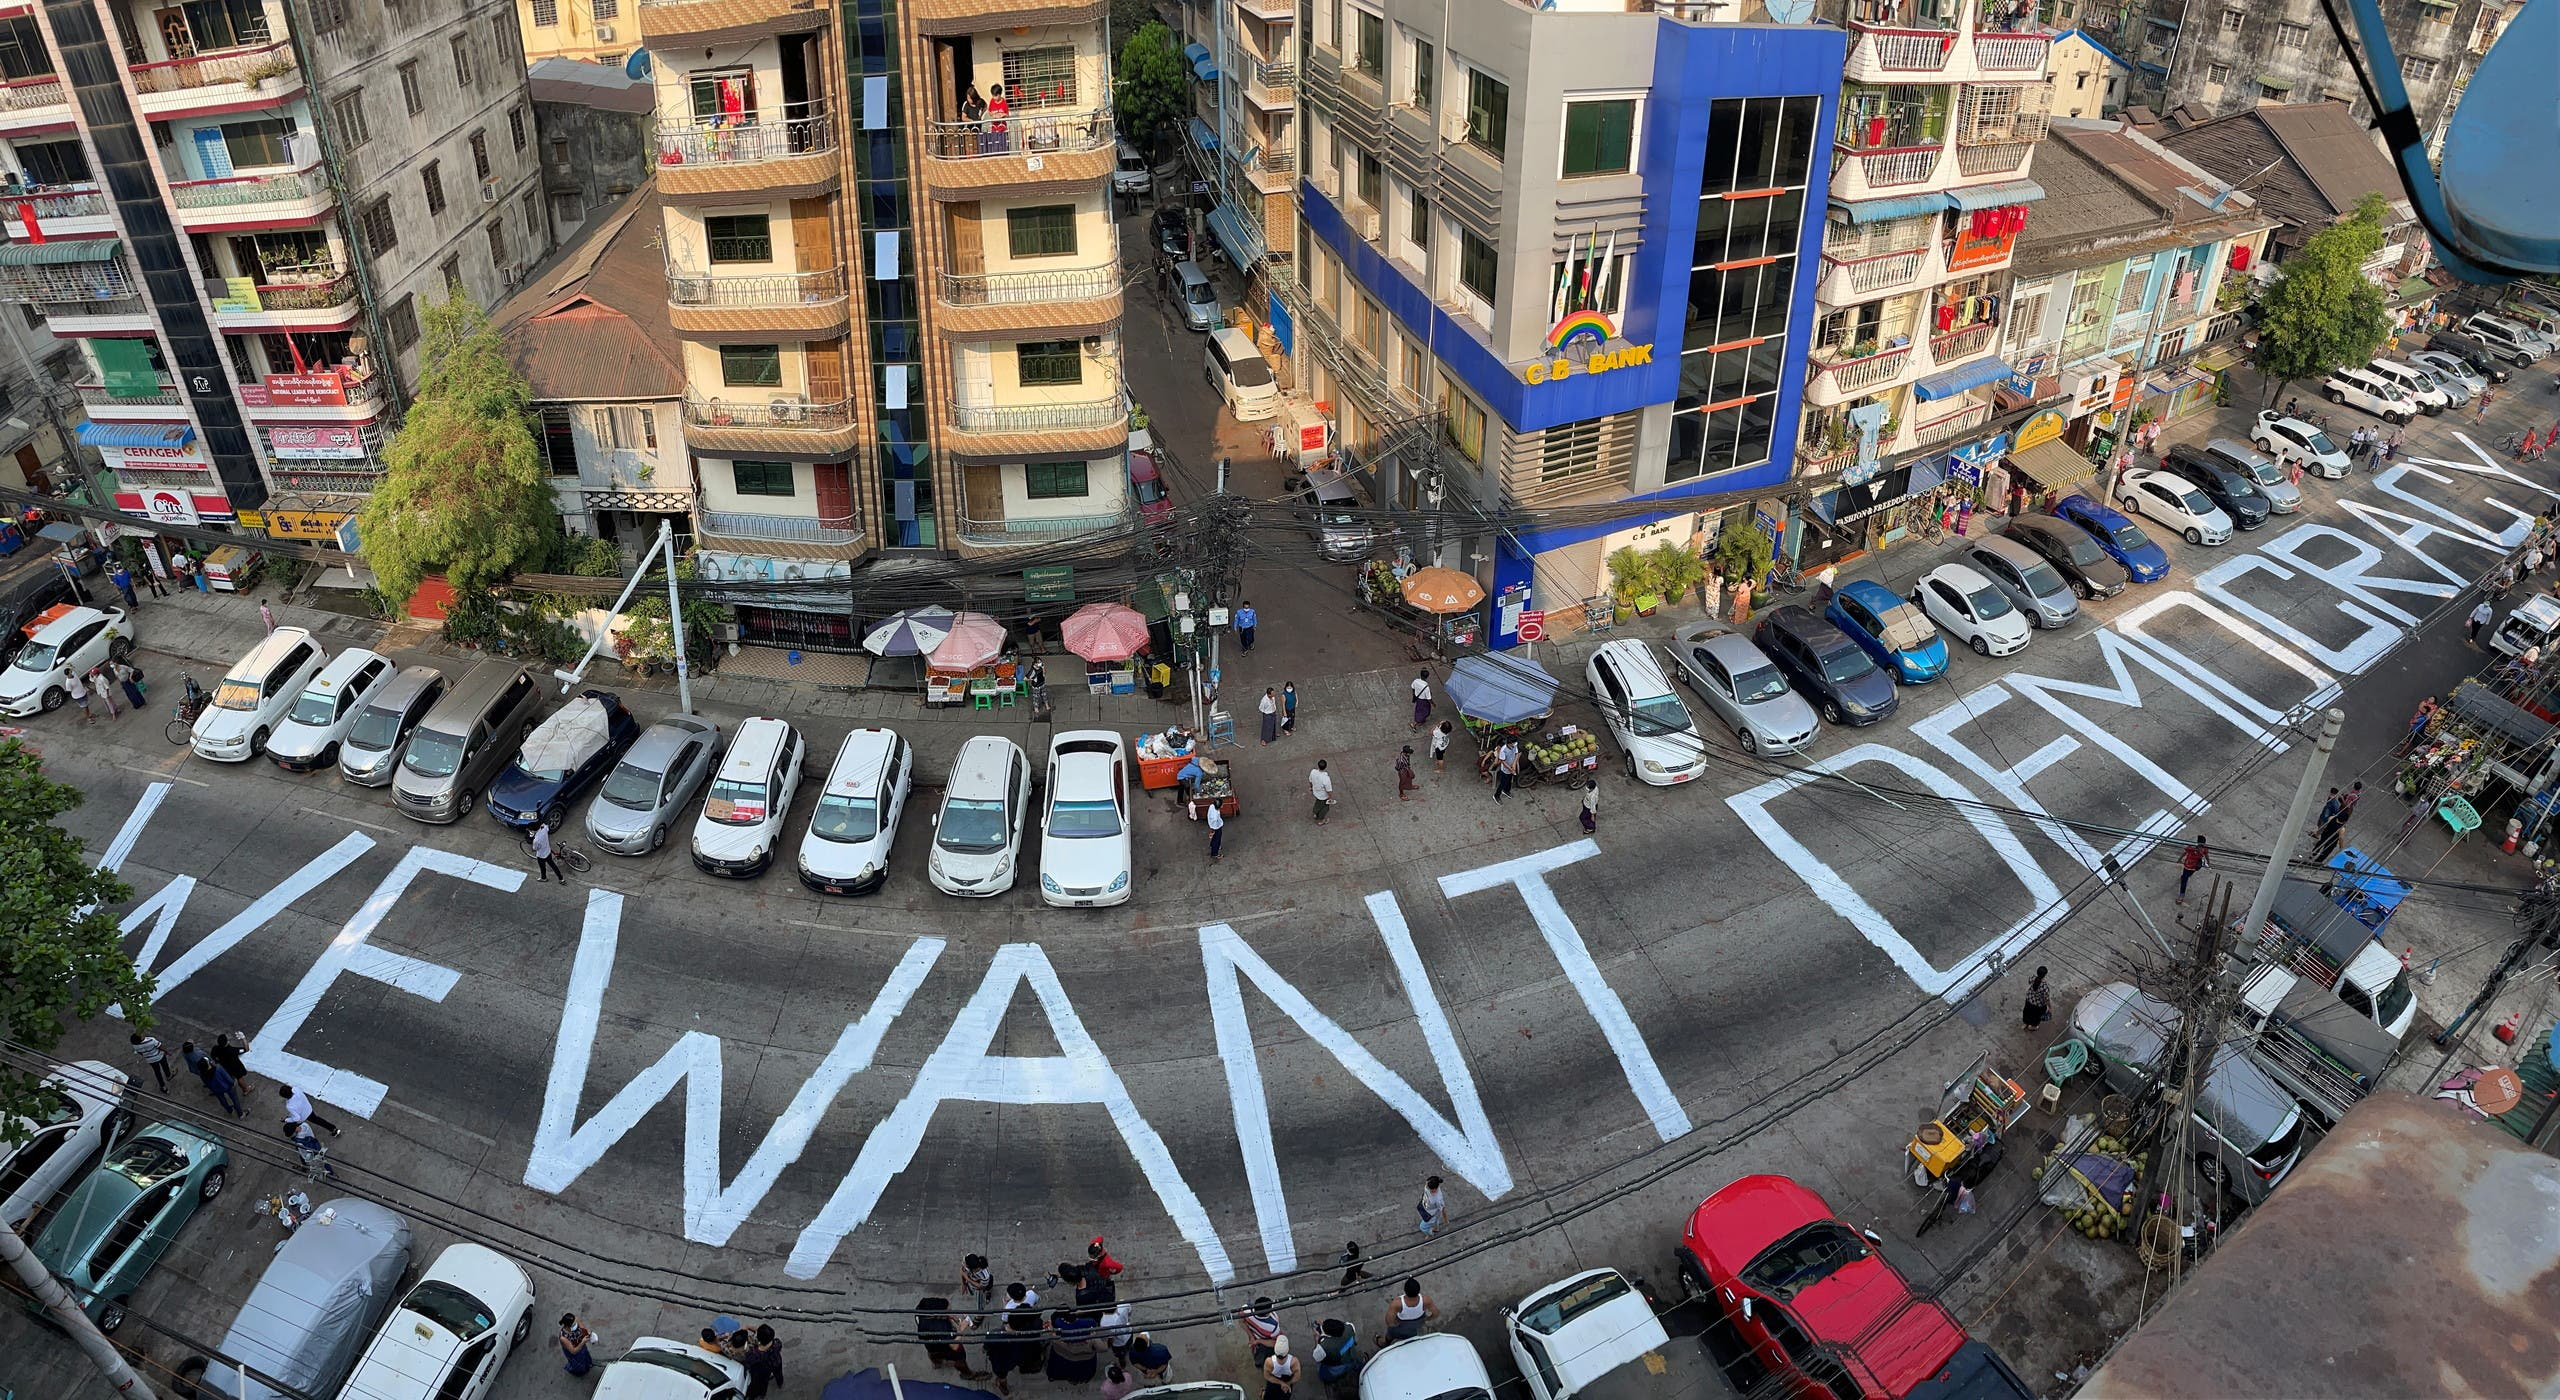 A slogan is written on a street as a protest after the coup in Yangon. (Reuters)